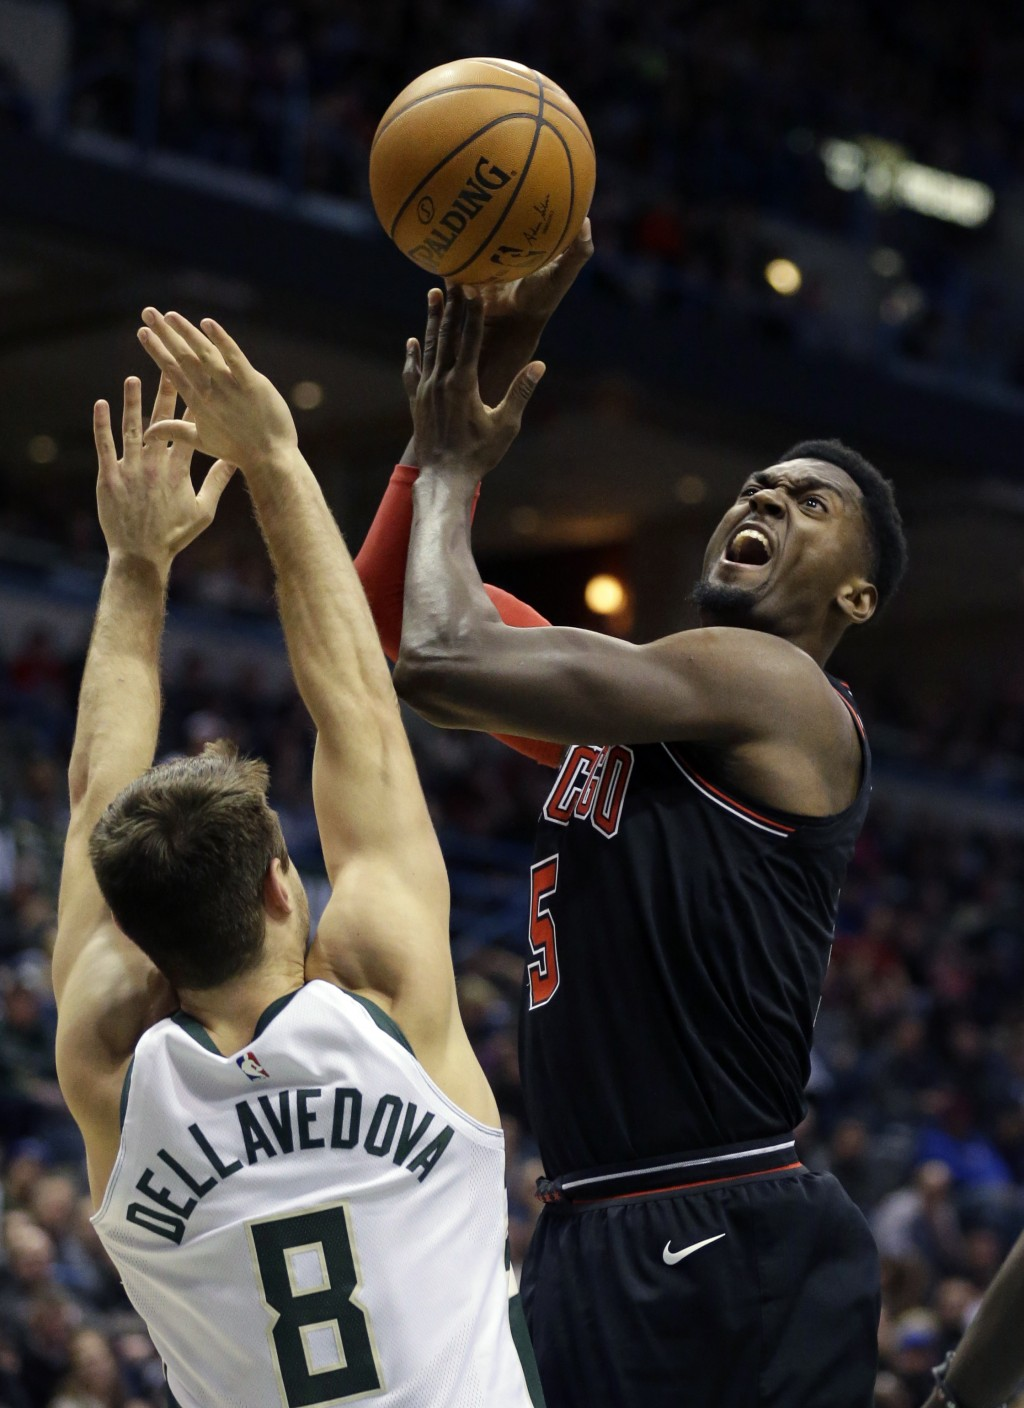 Chicago Bulls' Bobby Portis, right, puts up a shot against Milwaukee Bucks' Matthew Dellavedova during the first half of an NBA basketball game, Tuesd...